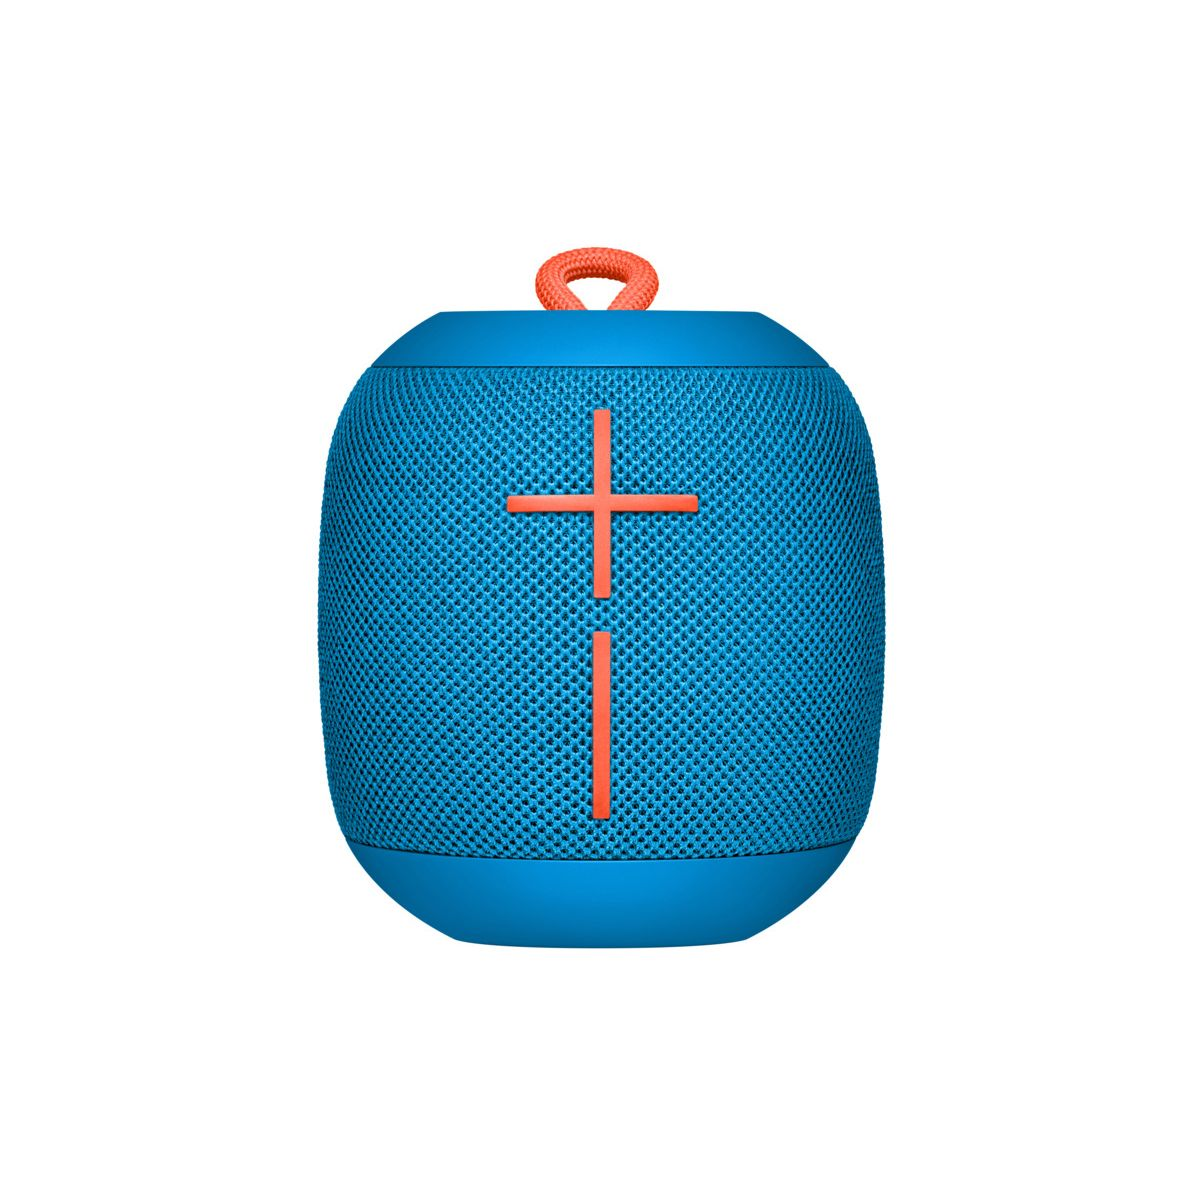 Enceinte Bluetooth ULTIMATE EARS UE WONDERBOOM BLEUE